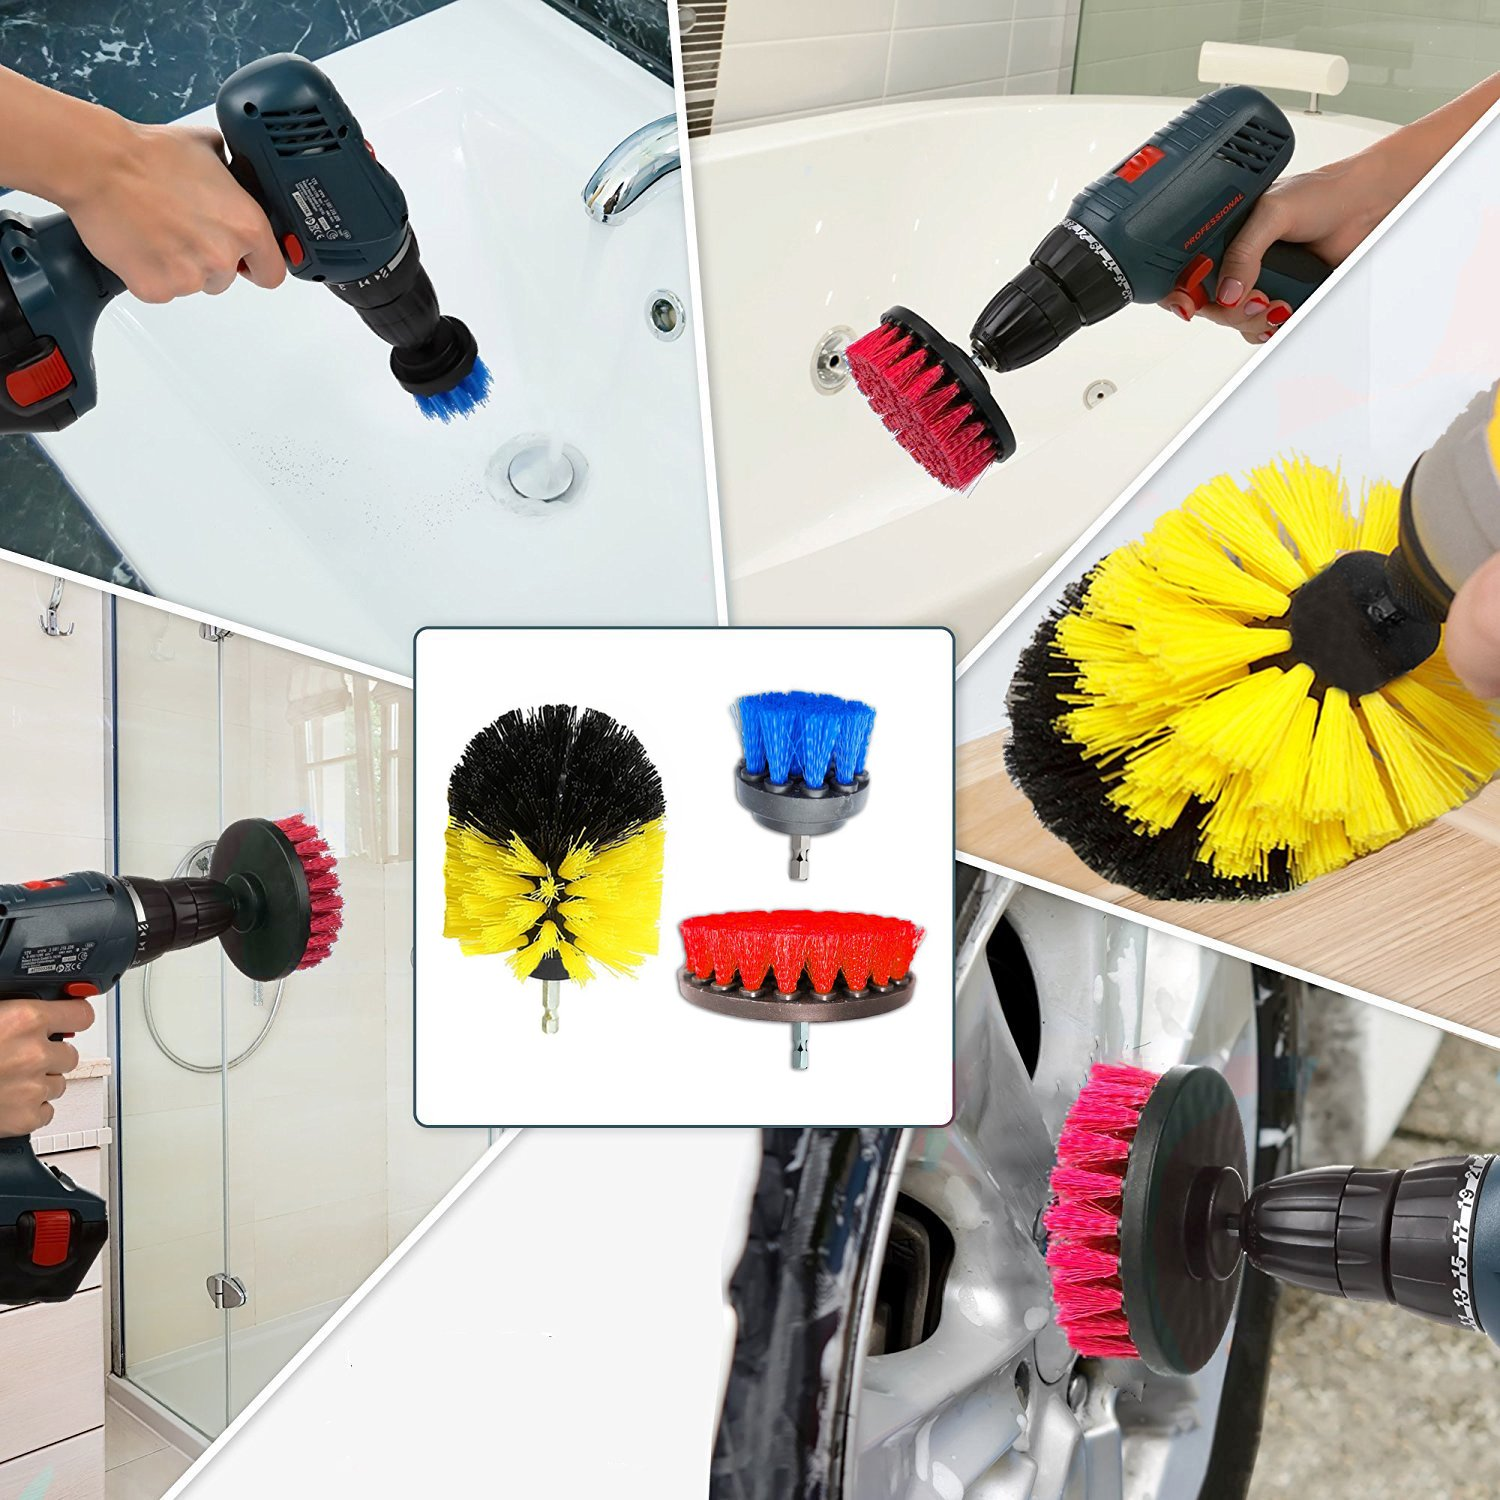 Sadun Scrub Brush Drill Attachment Kit - All Purpose Power Scrubber Brush Cleaning Kit for Shower Door, Bathtub, Toilet, Tile, Grout, Rim, Floor, Carpet, Bathroom and Kitchen Surfaces-3 color